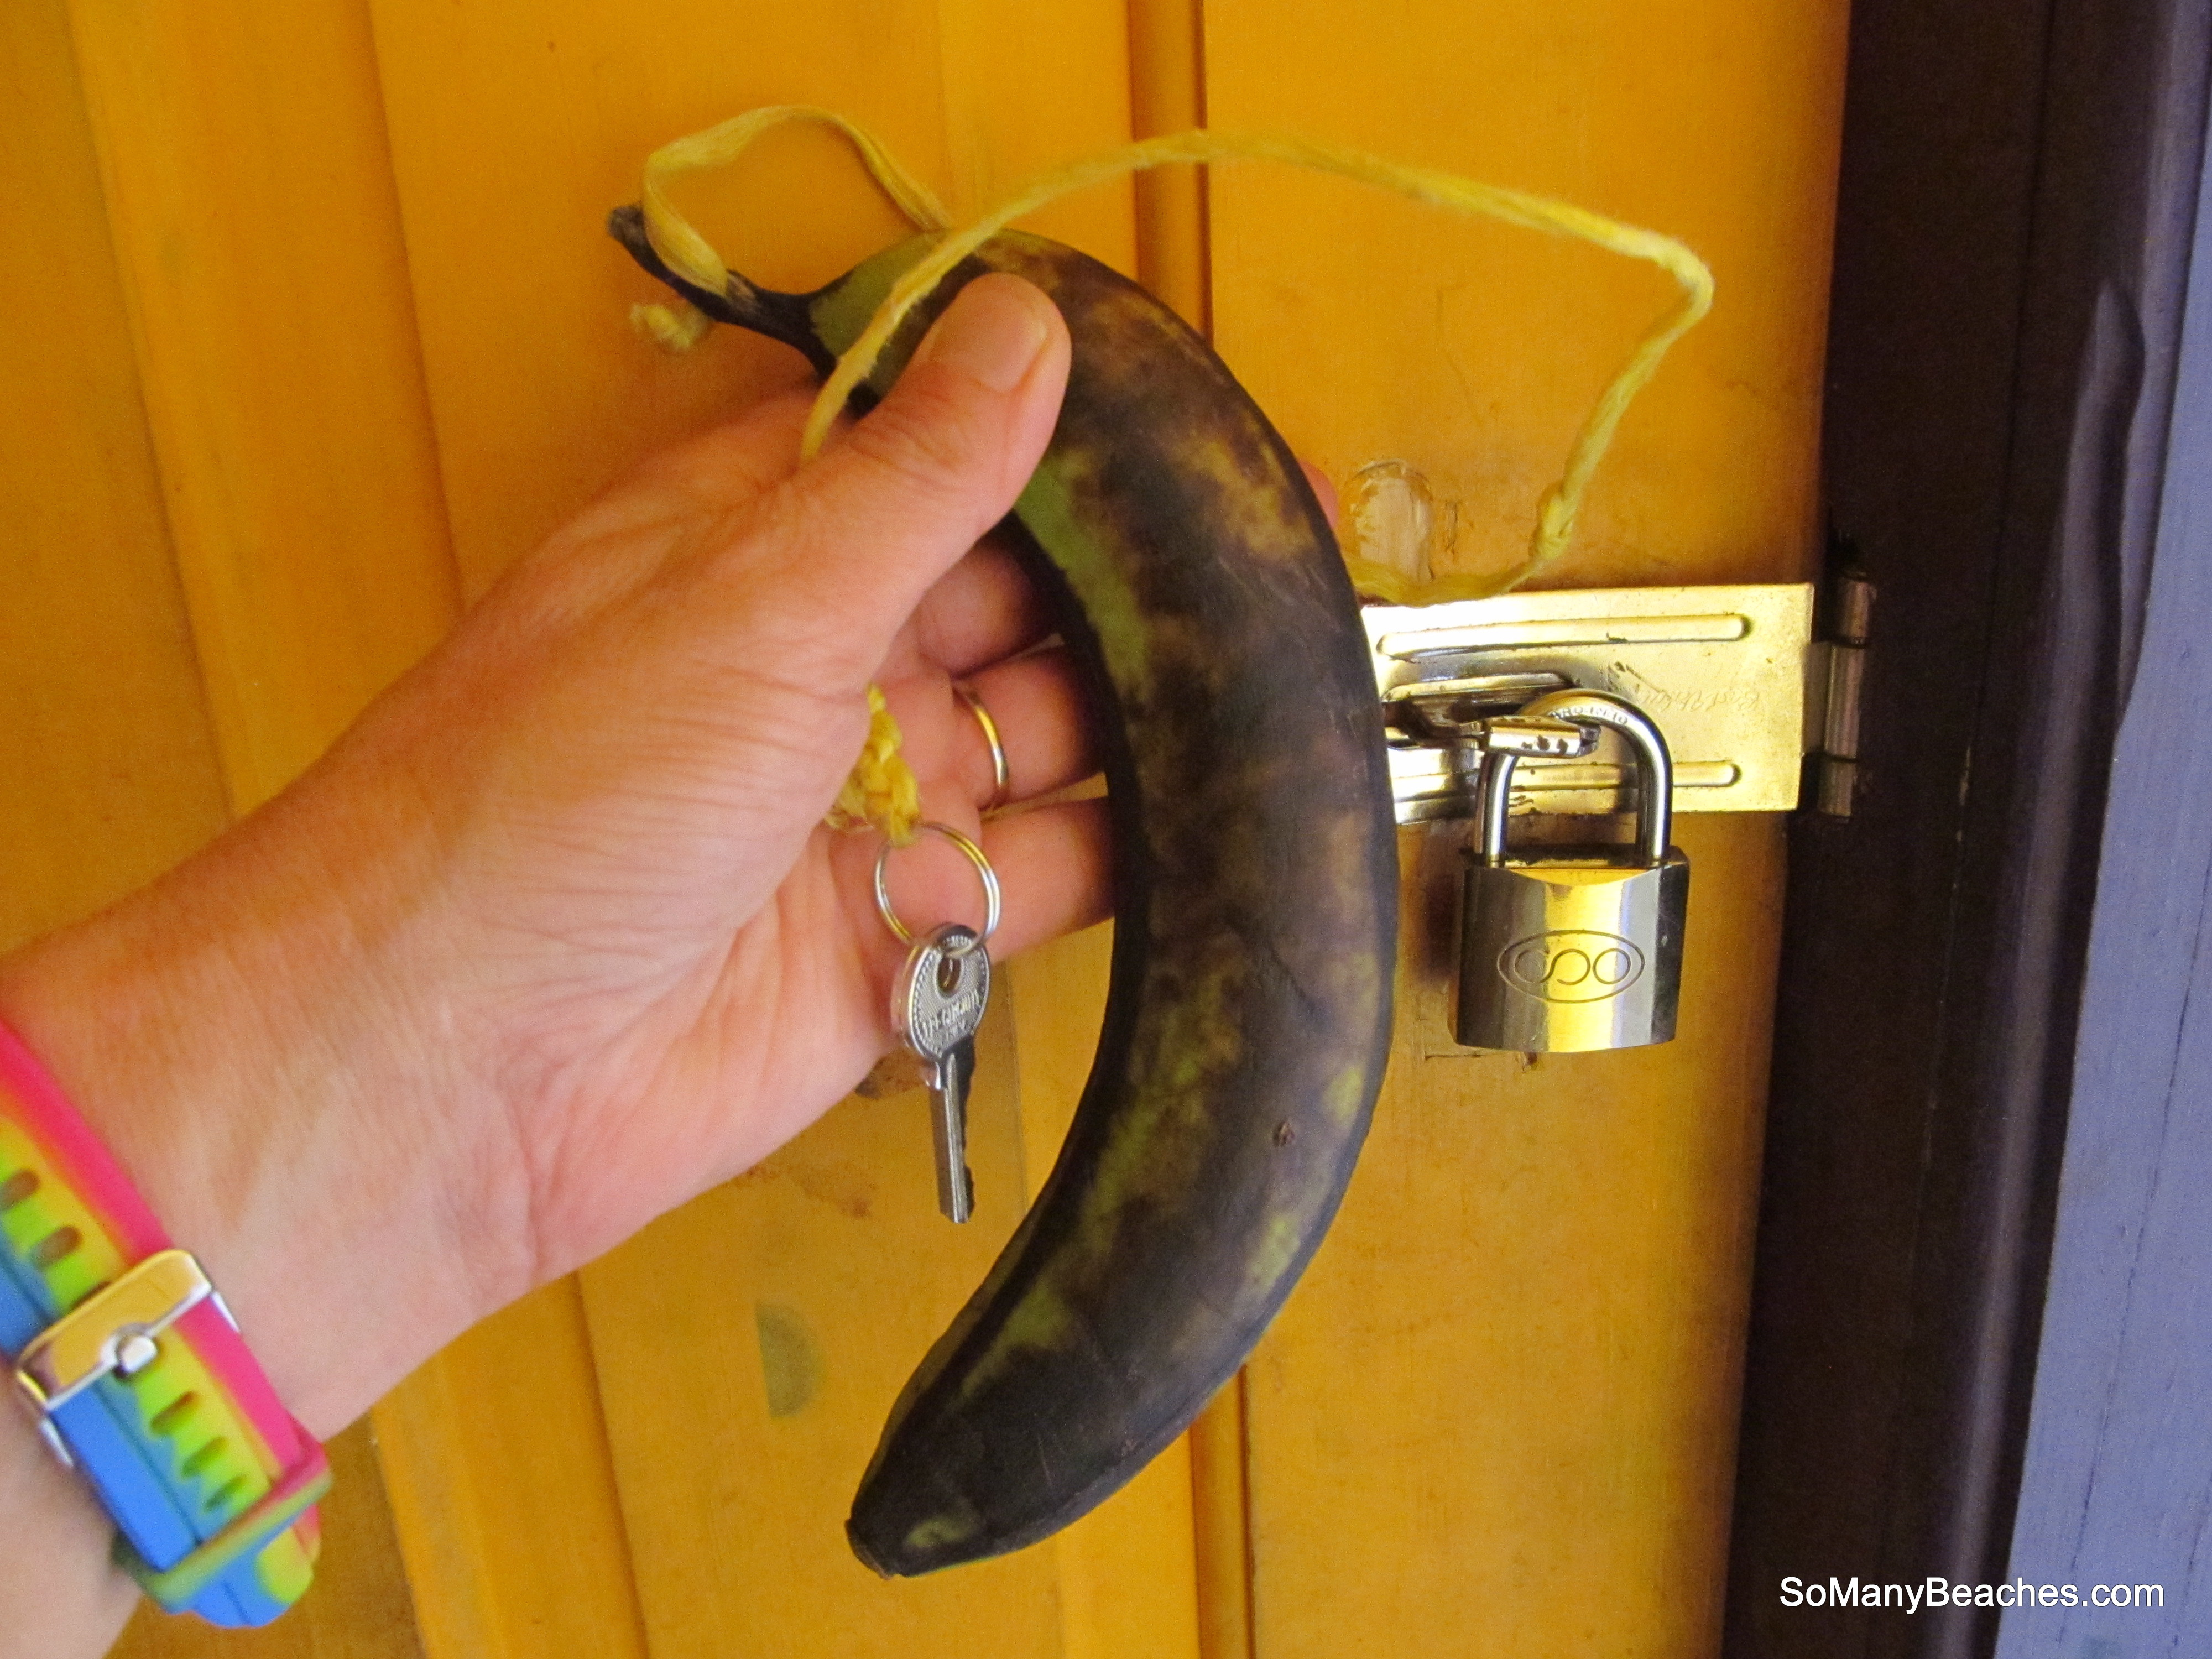 bathroom key in the jungle is an actual banana